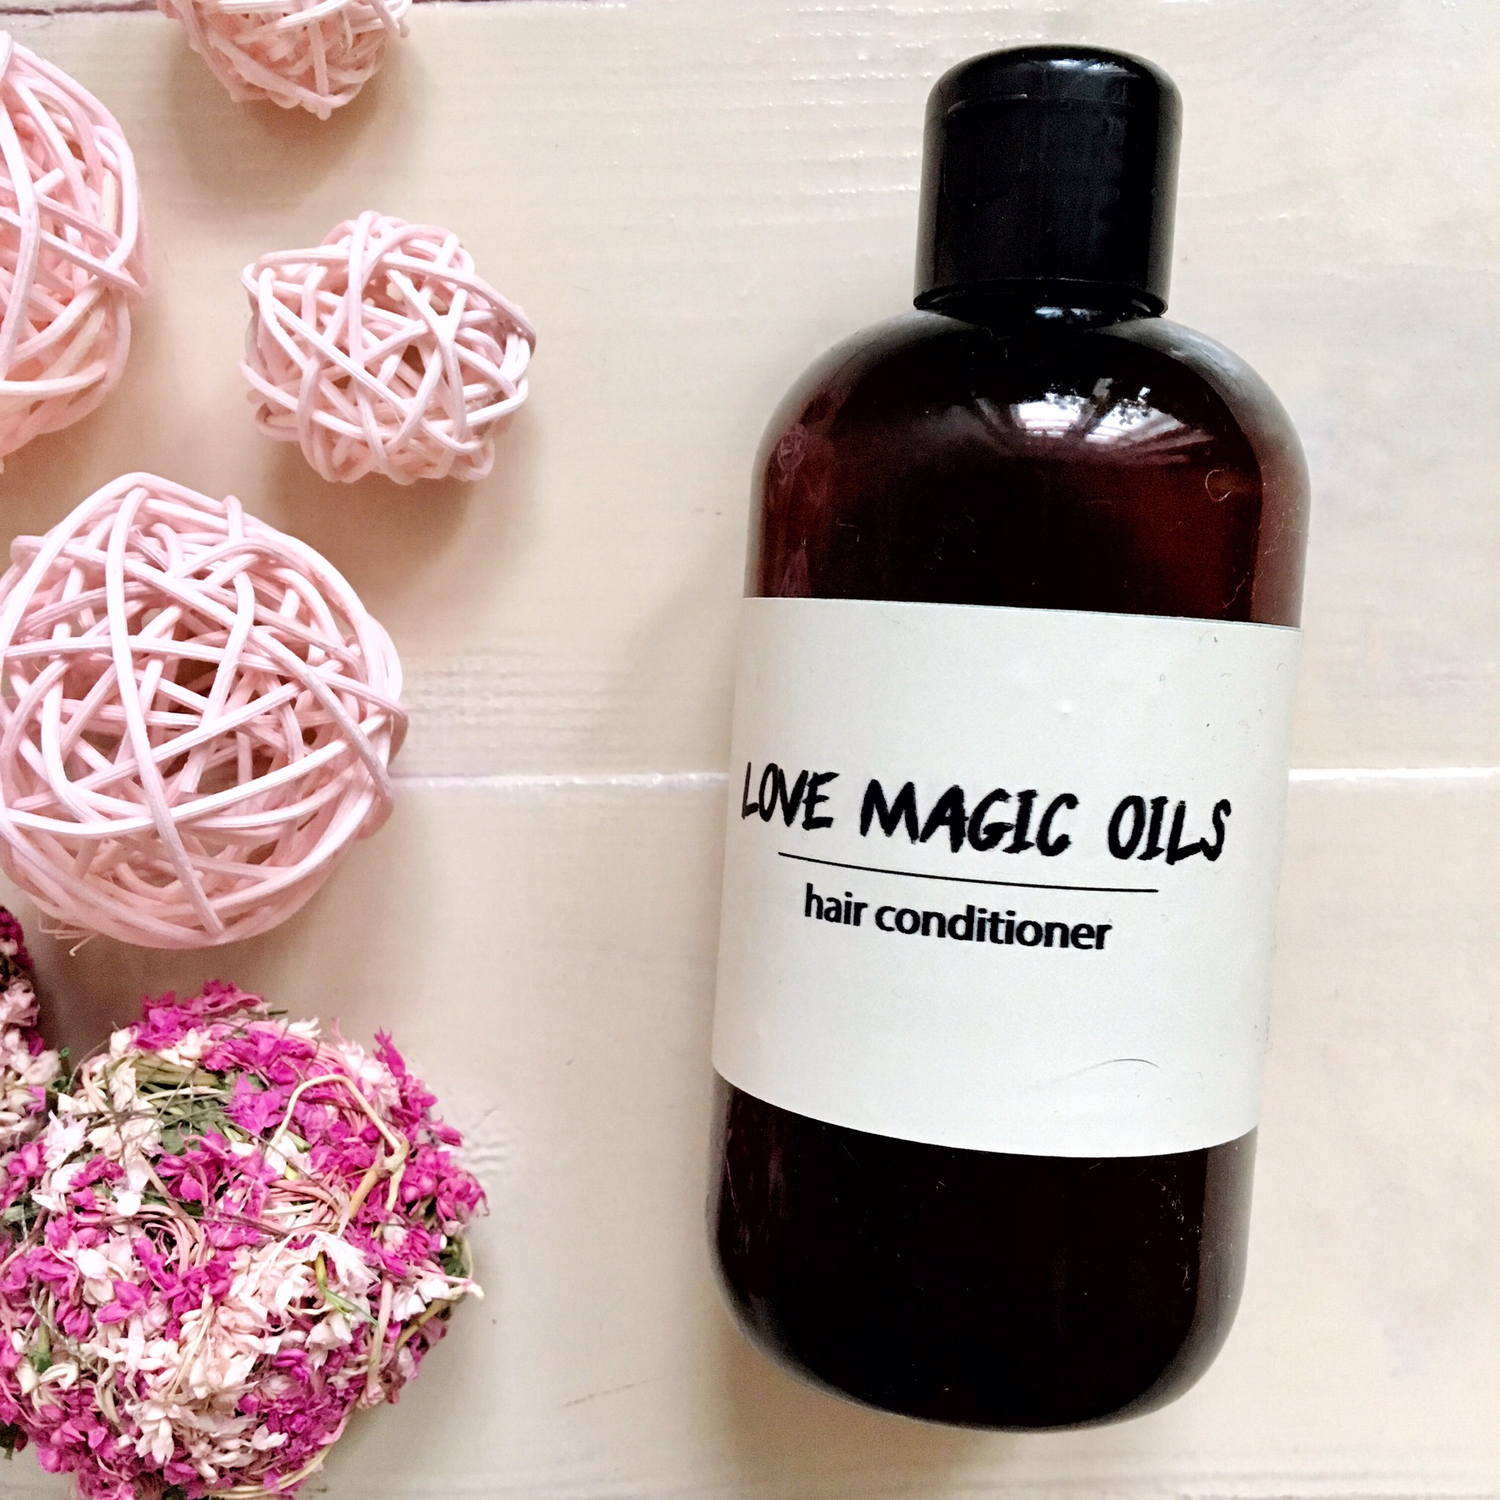 Love Magic Oils (hair conditioner)